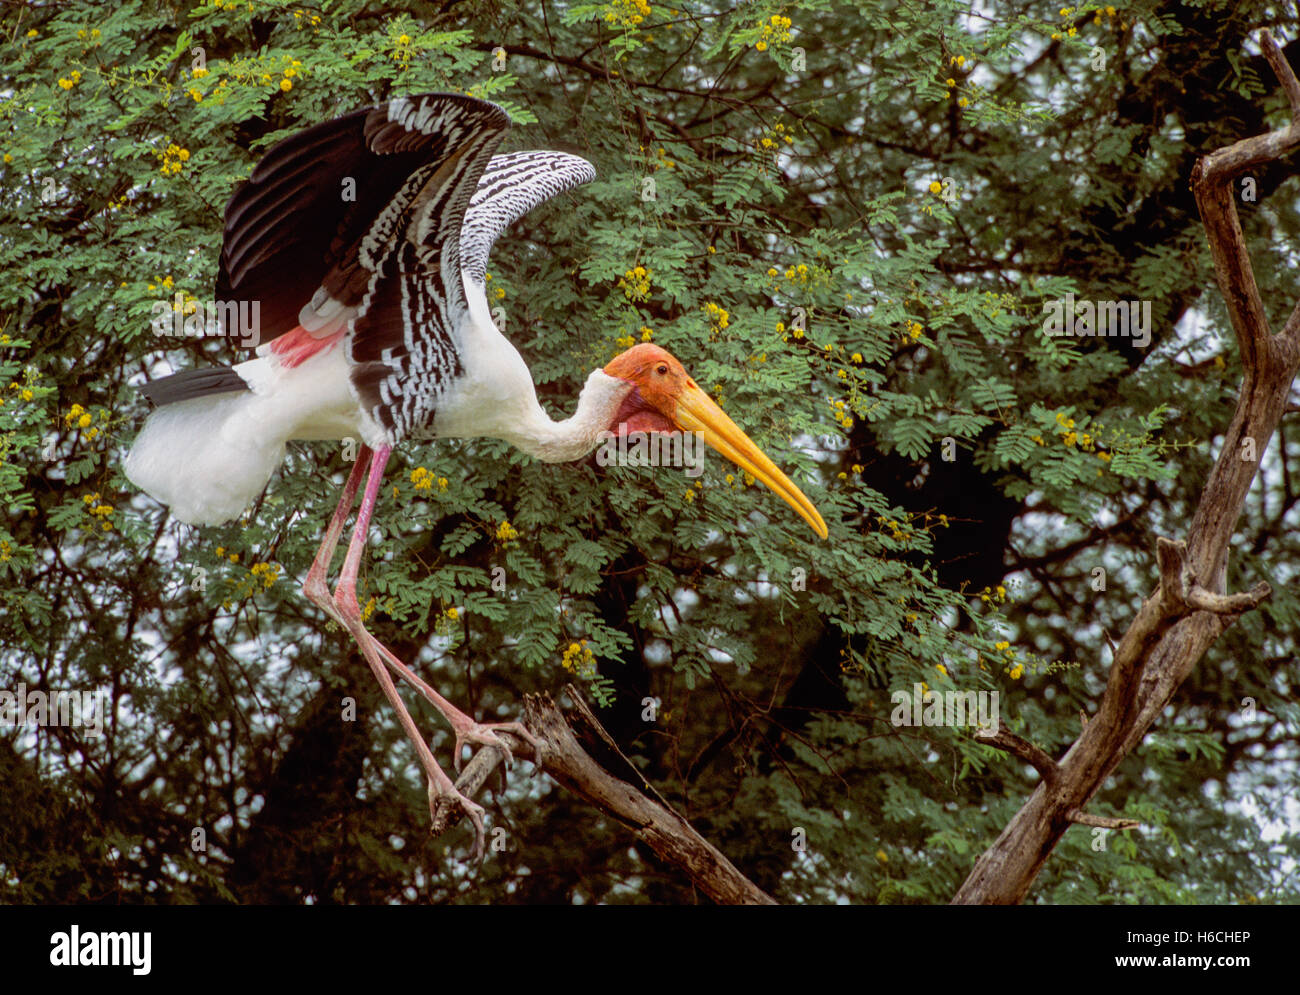 male Painted Stork showing breeding plumage,Mycteria leucocephala,spreads wings as it searches for twigs as nest - Stock Image